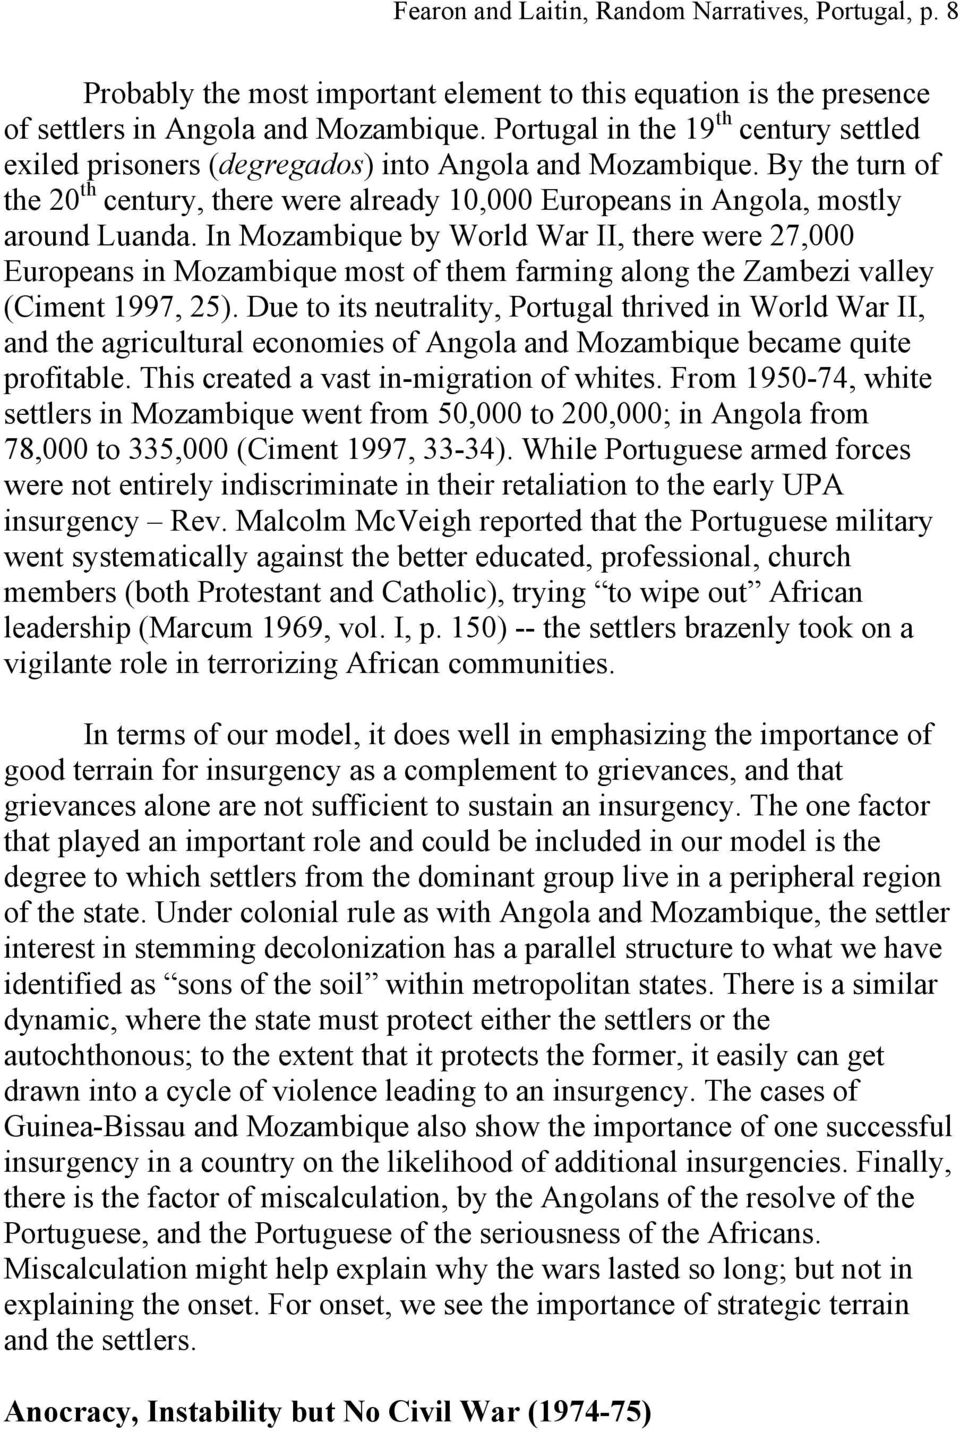 In Mozambique by World War II, there were 27,000 Europeans in Mozambique most of them farming along the Zambezi valley (Ciment 1997, 25).